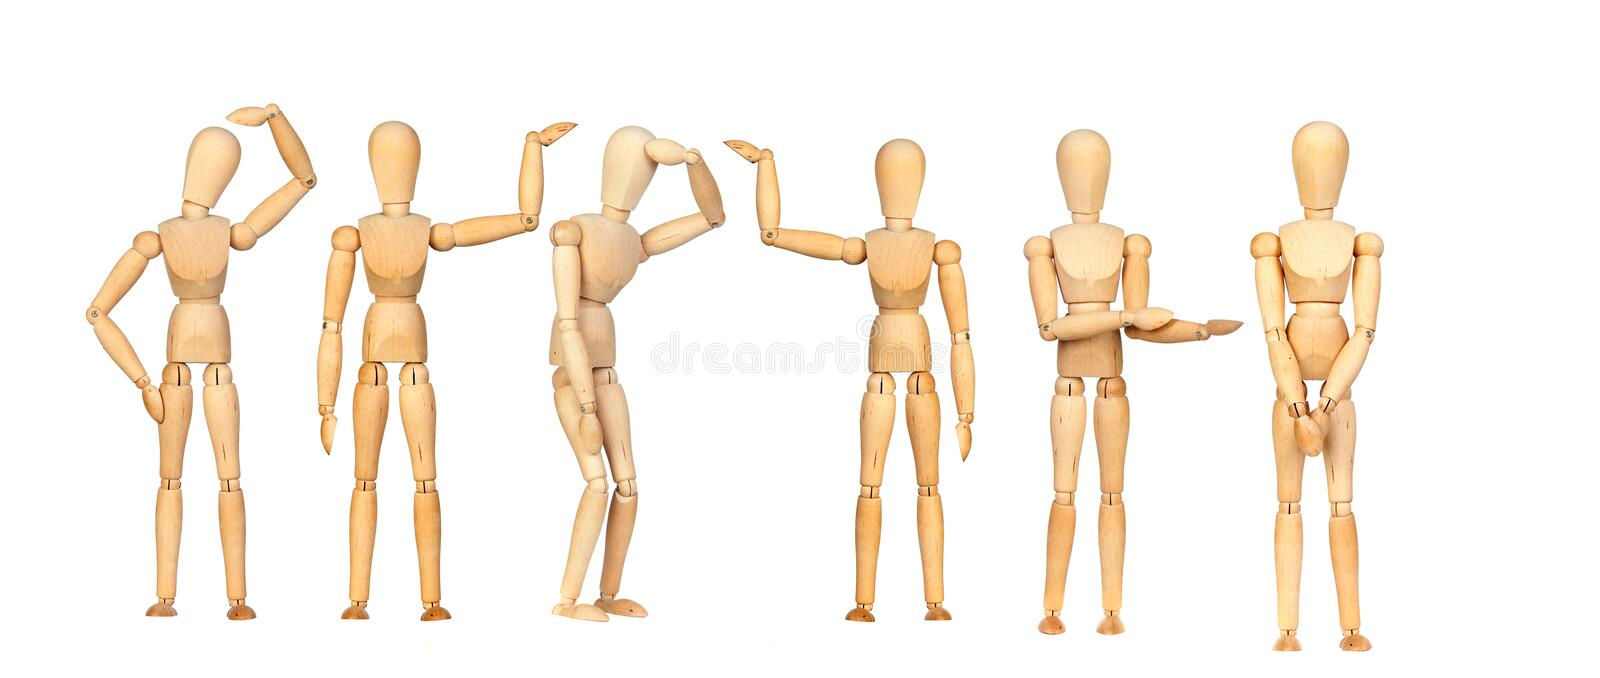 Many wooden mannequin doing differents gestures stock image